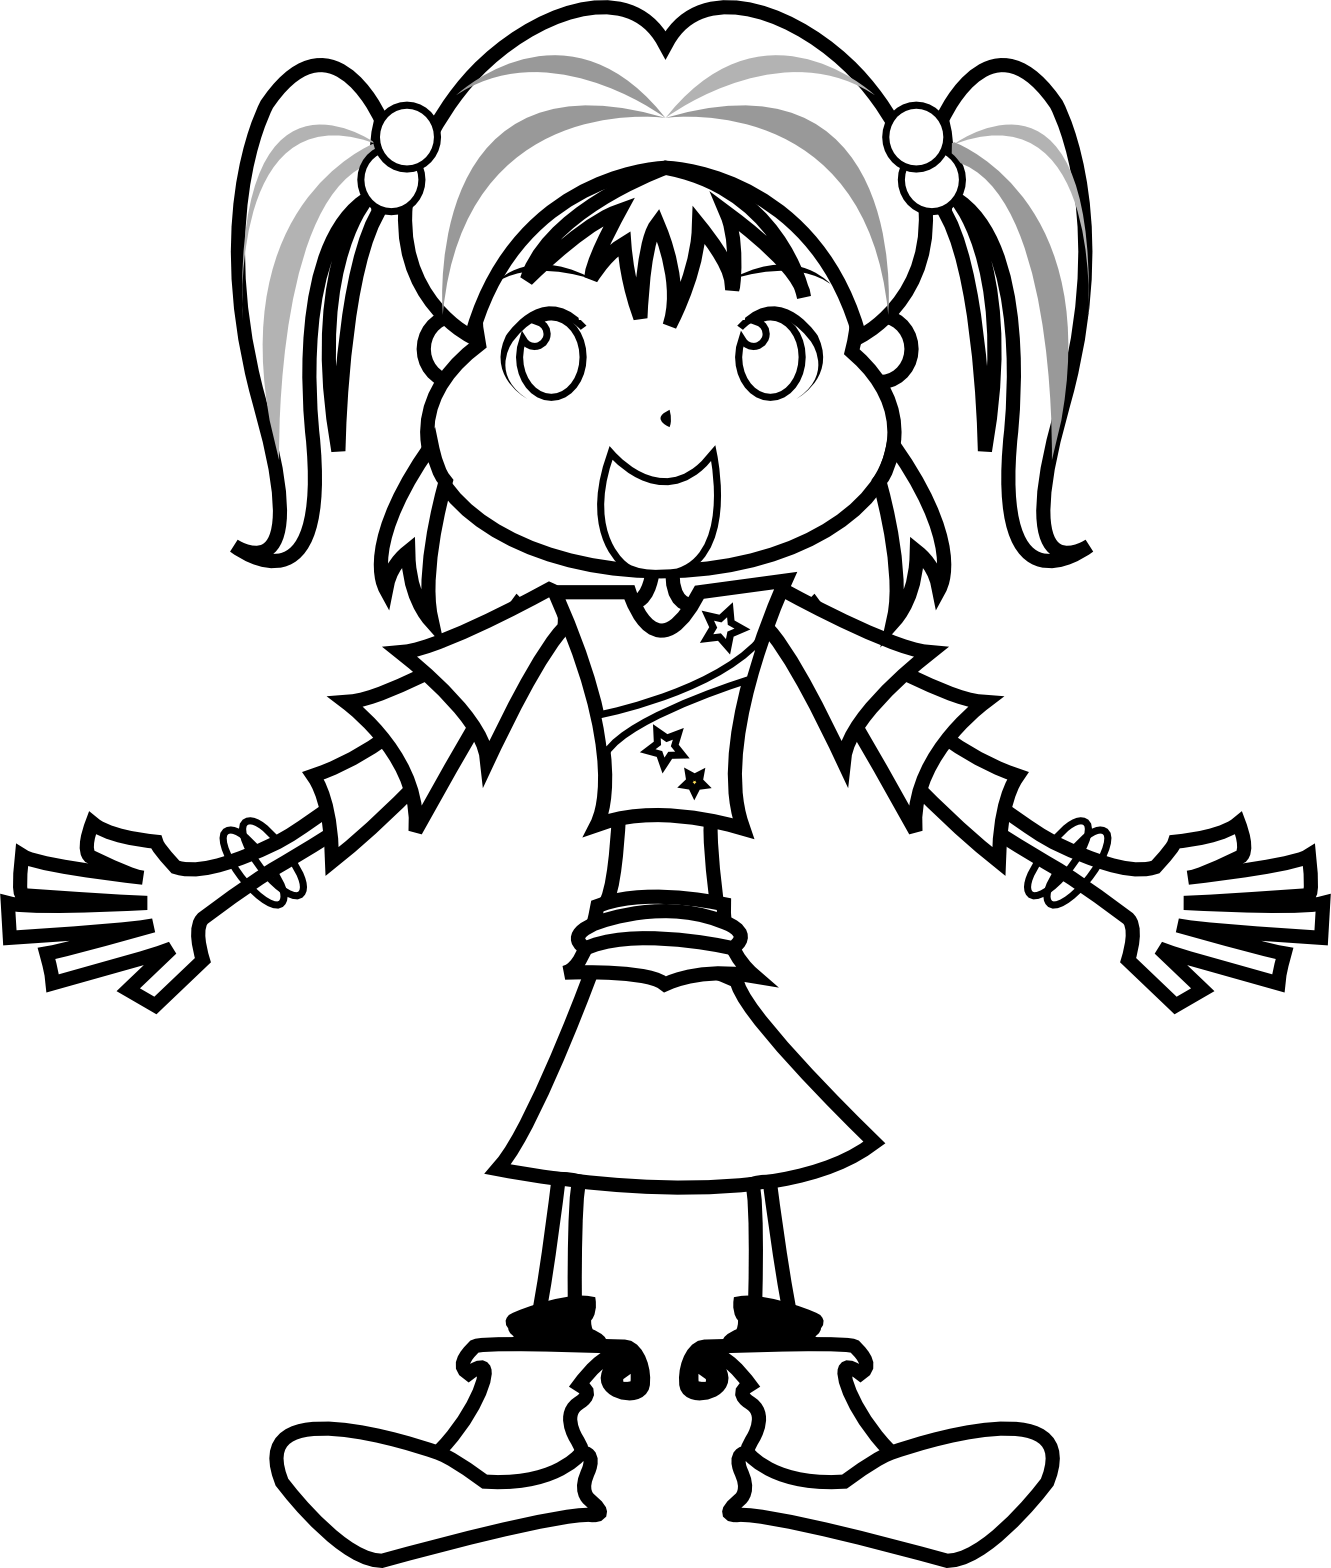 Girl Images Black And White Clipart 20 Free Cliparts